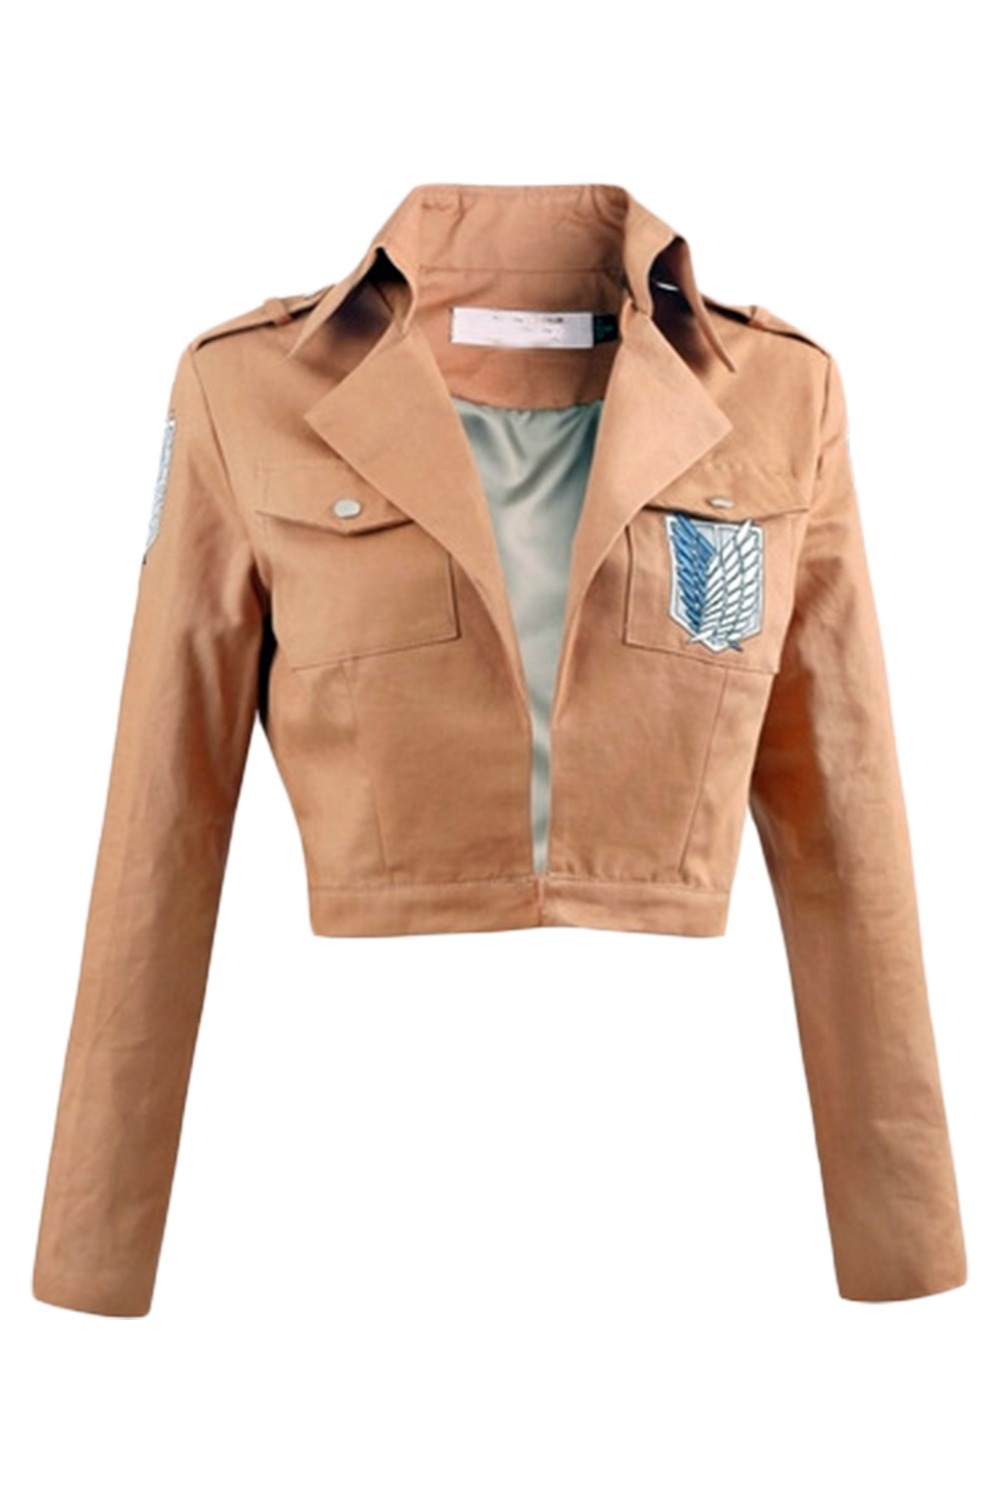 Anime Attack on Titan Shingeki no Kyojin Legion Uniform Fabric Jacket Coat Eren Levi Ackerman Rivaille Cosplay Costume